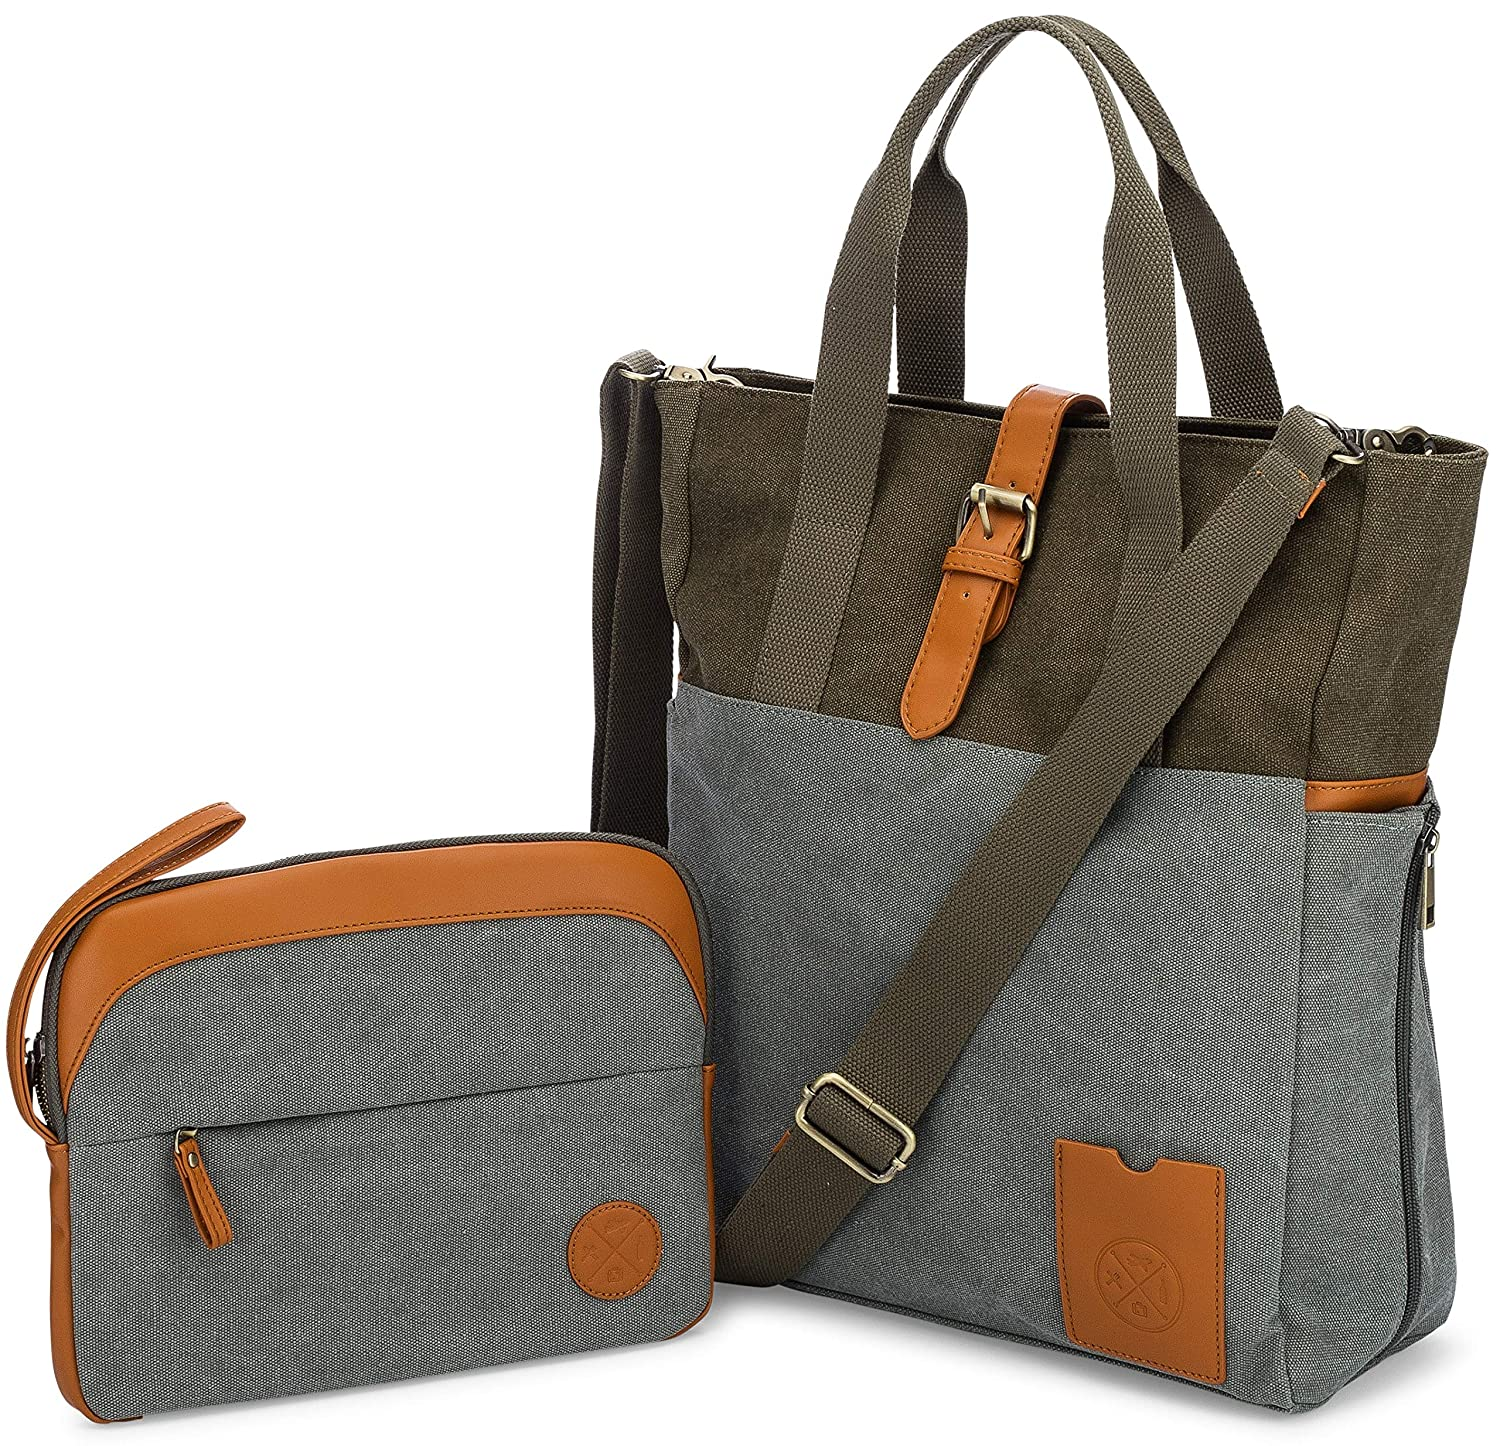 81720f4d60ce Amazon.com   LAPTOP BAG for Women with Crossbody Strap and matching Small  Purse - Large Canvas Tote Bag for Women - Work Bags for Women with Multiple  ...